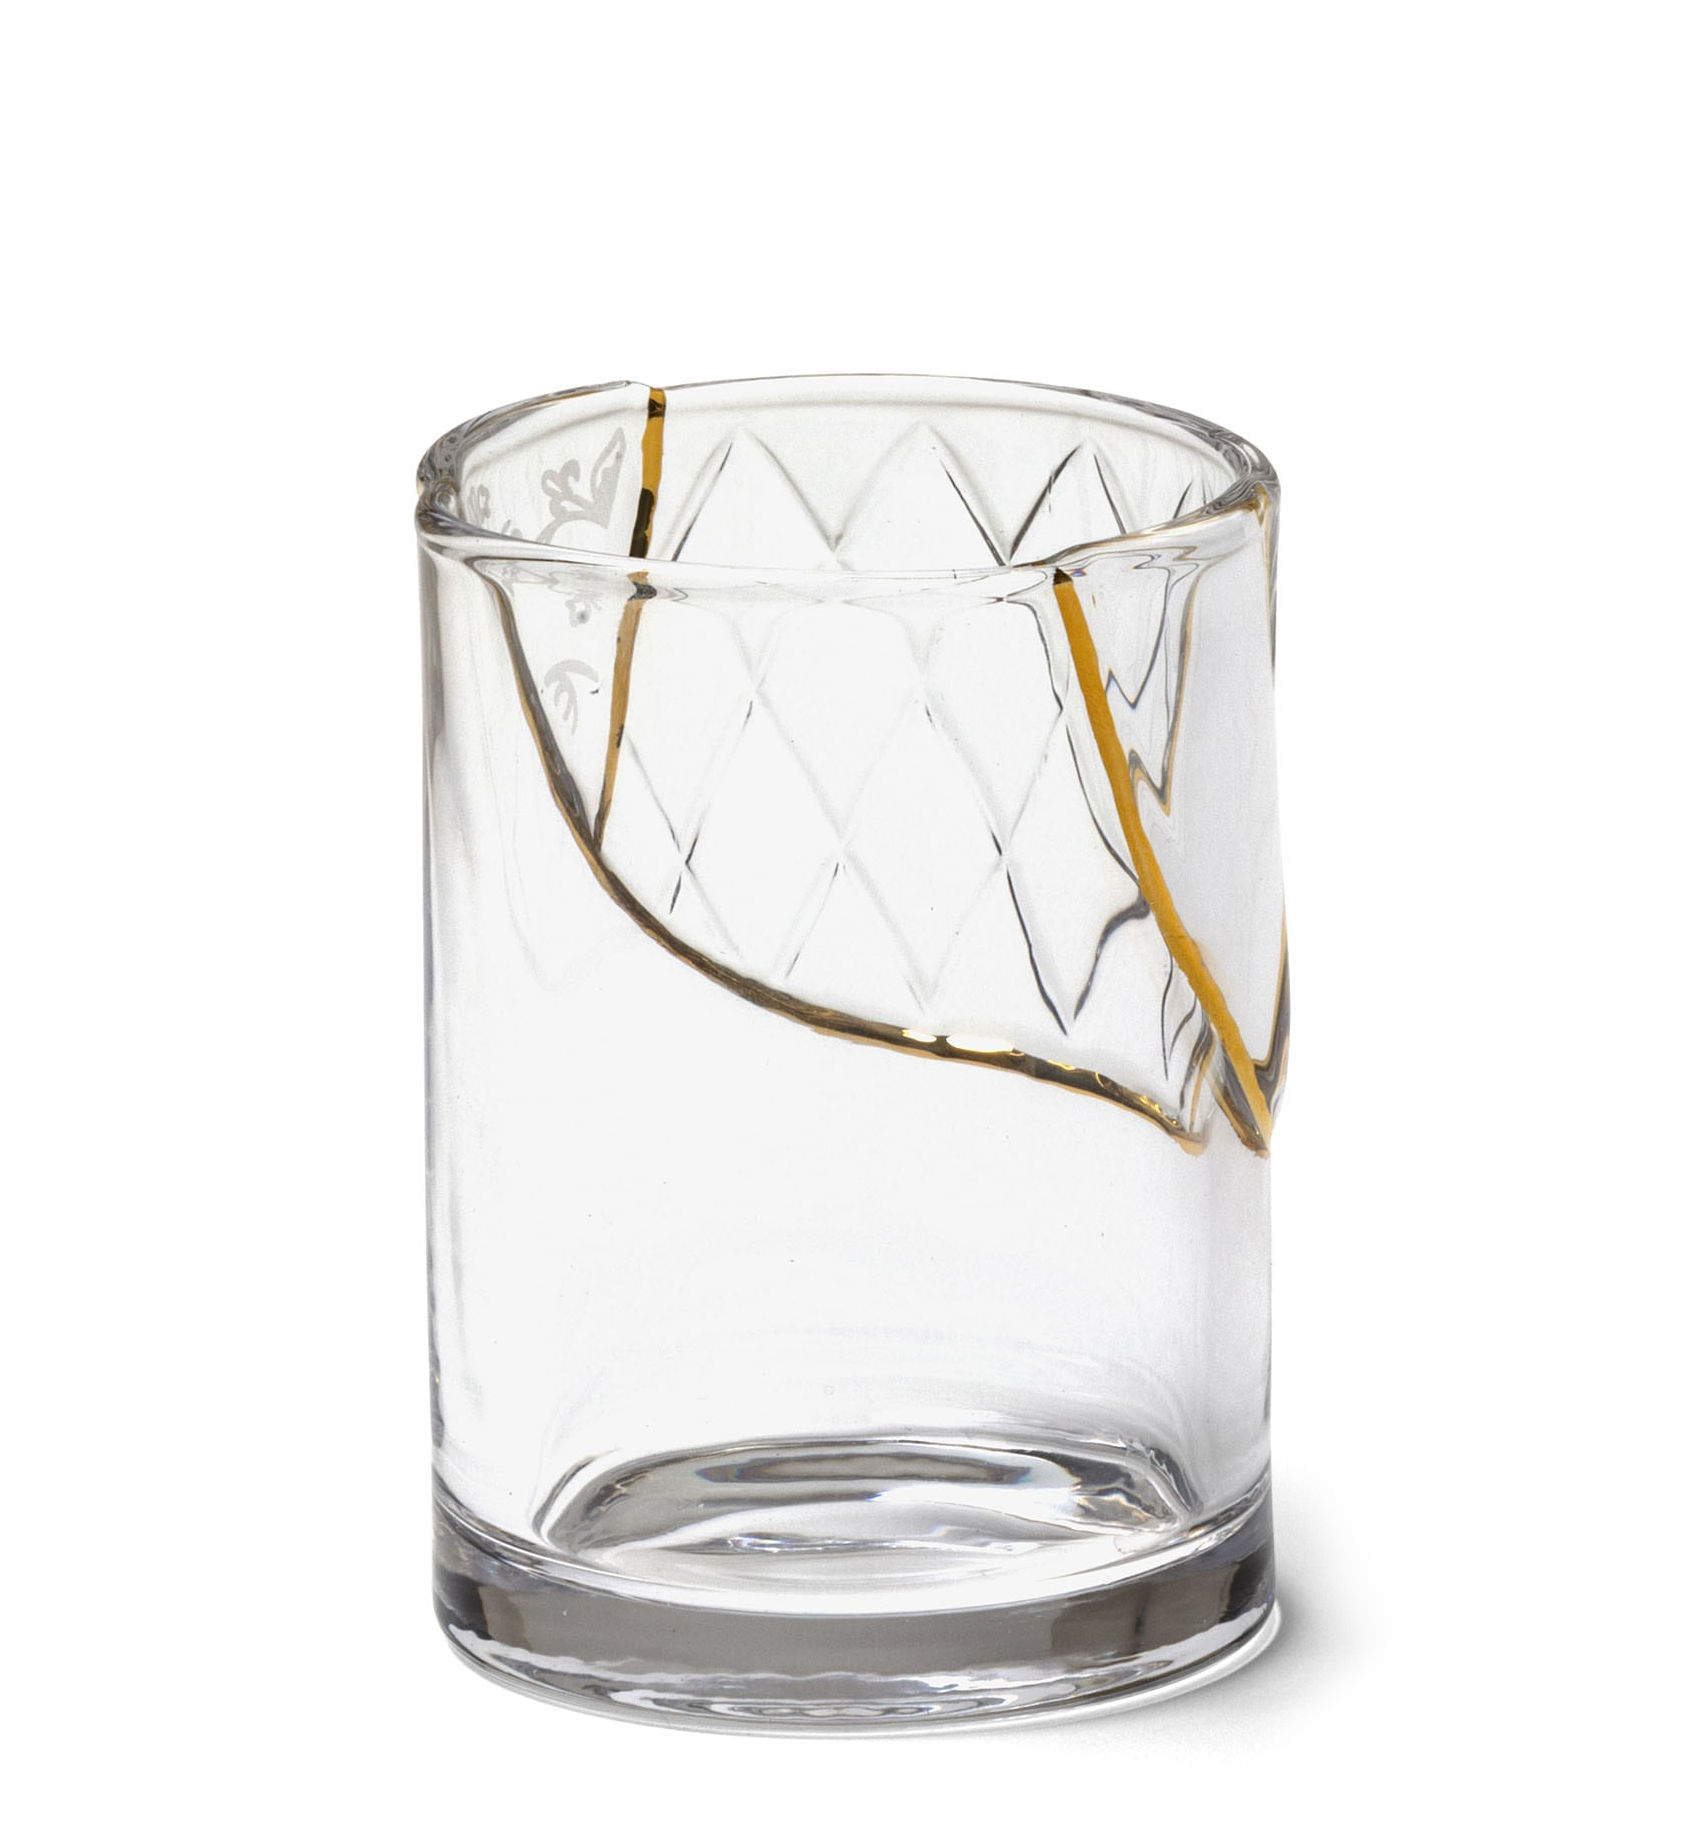 Arts de la table - Verres  - Verre Kintsugi n°2 / Verre & or fin - Seletti - n°2 / Transparent & or - Or fin, Verre